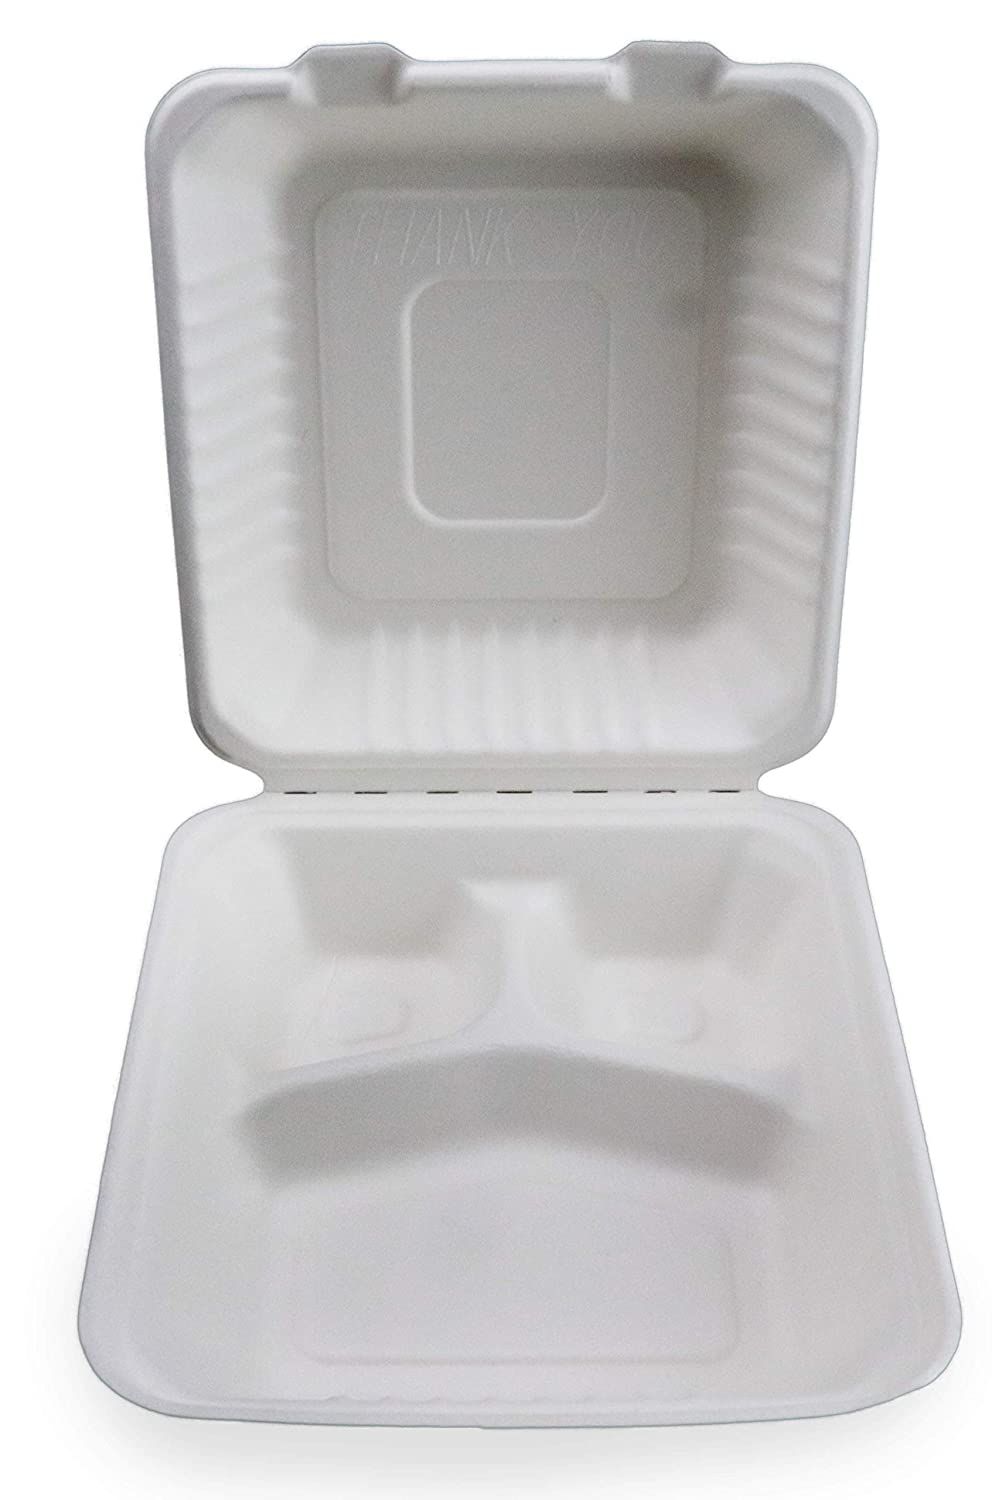 "Footprint-ECO-C093-PW1 200 Pack Fiber 9"" 3-Cavity Take Out Food Containers with Clamshell Hinged Lid (White)"